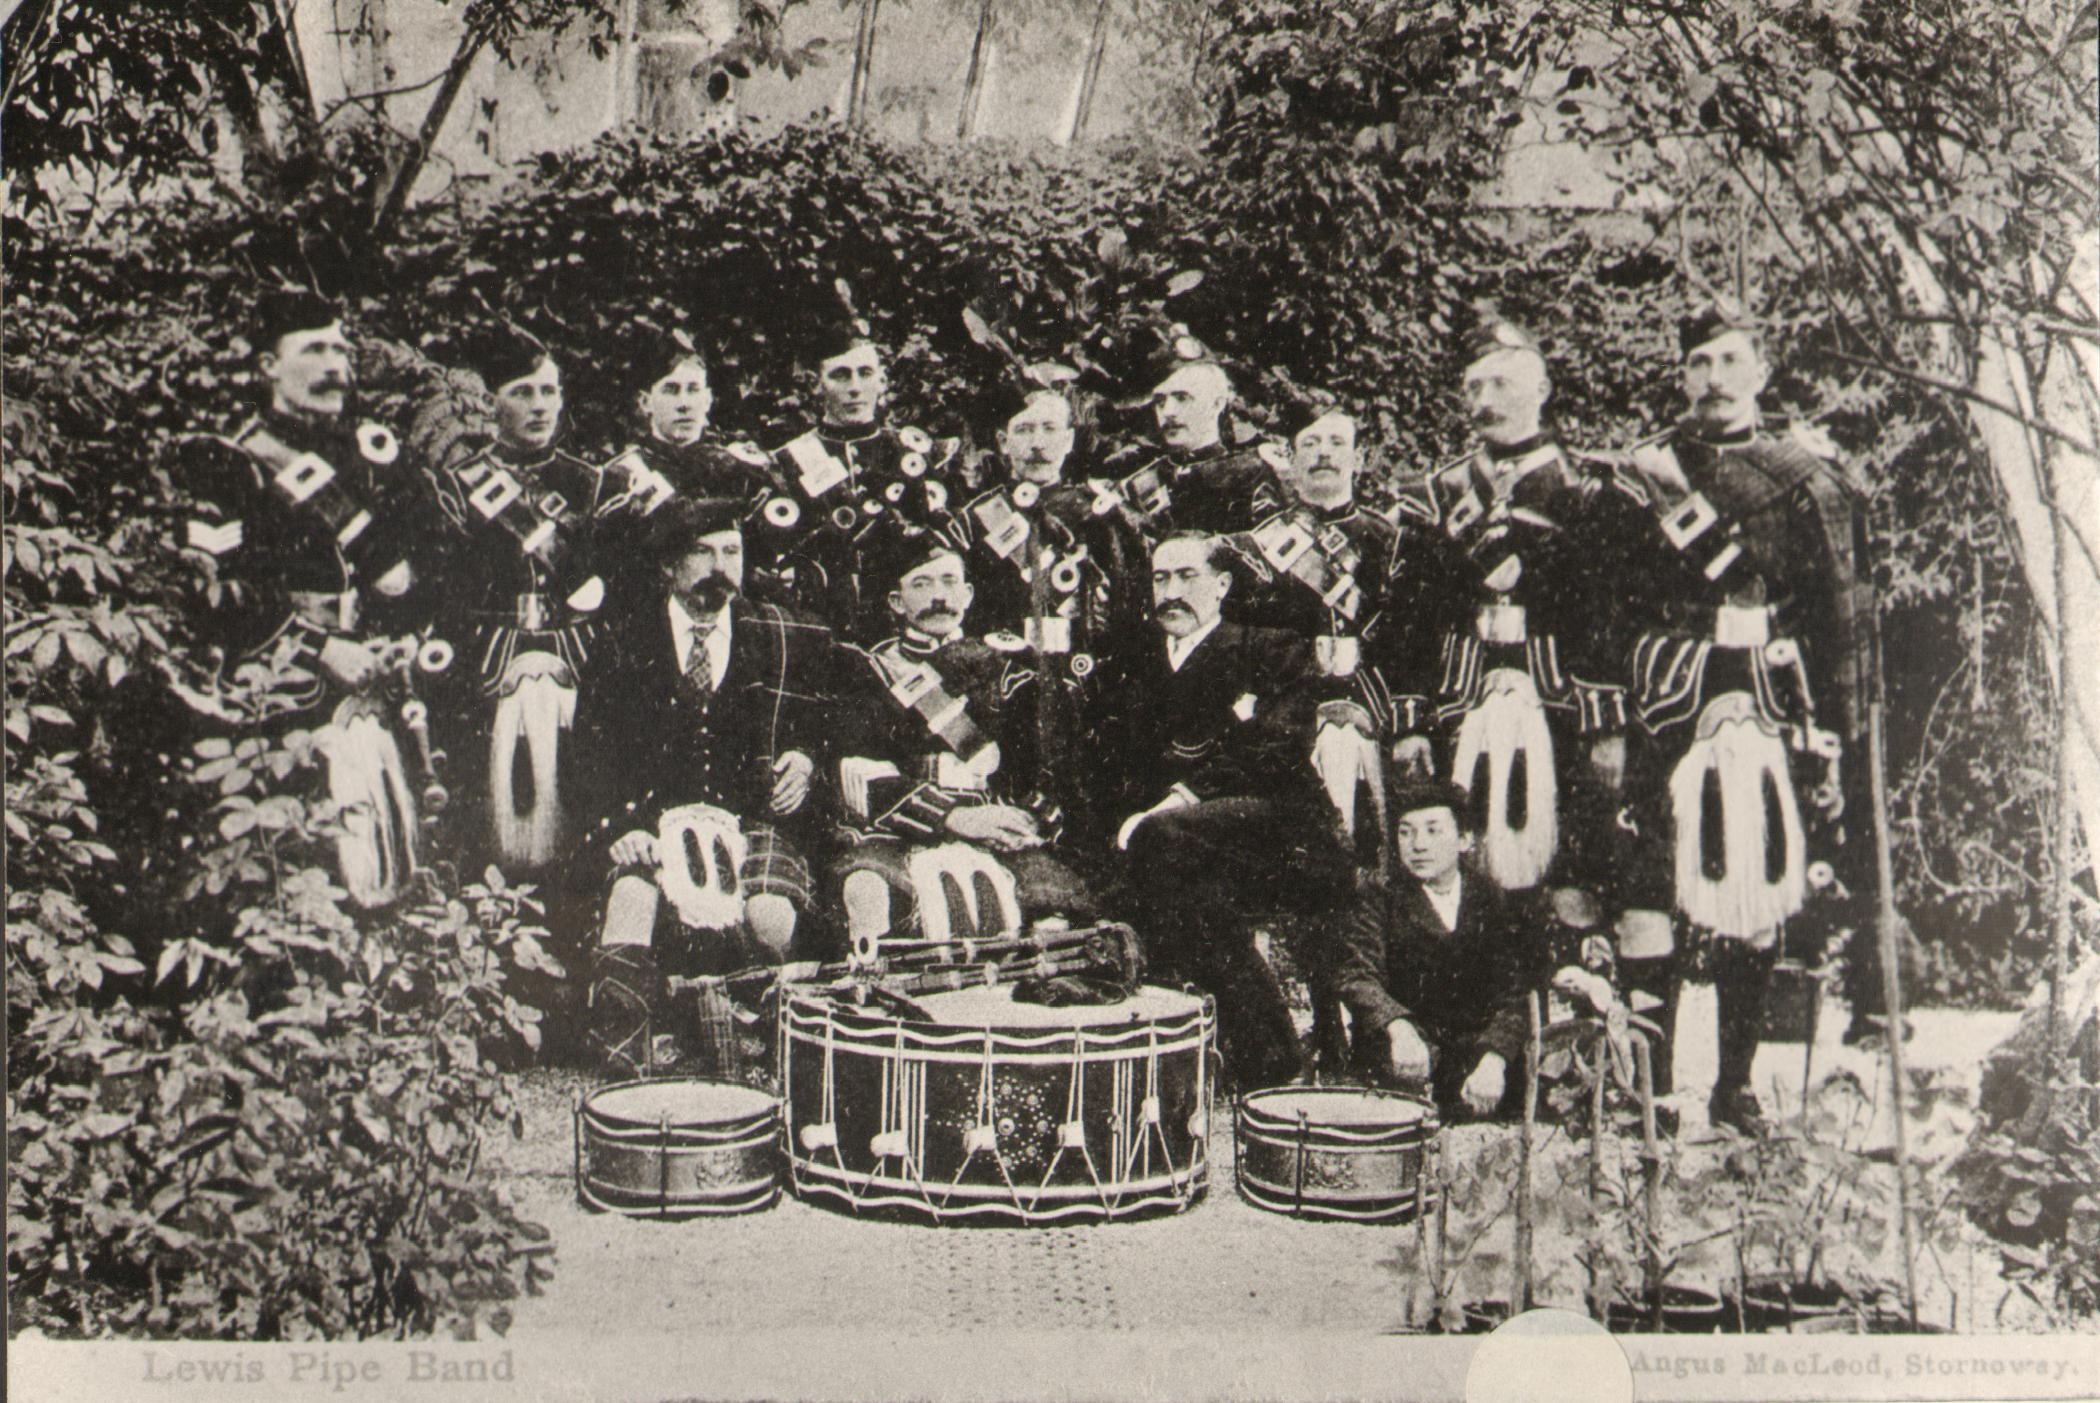 Lewis Pipe Band